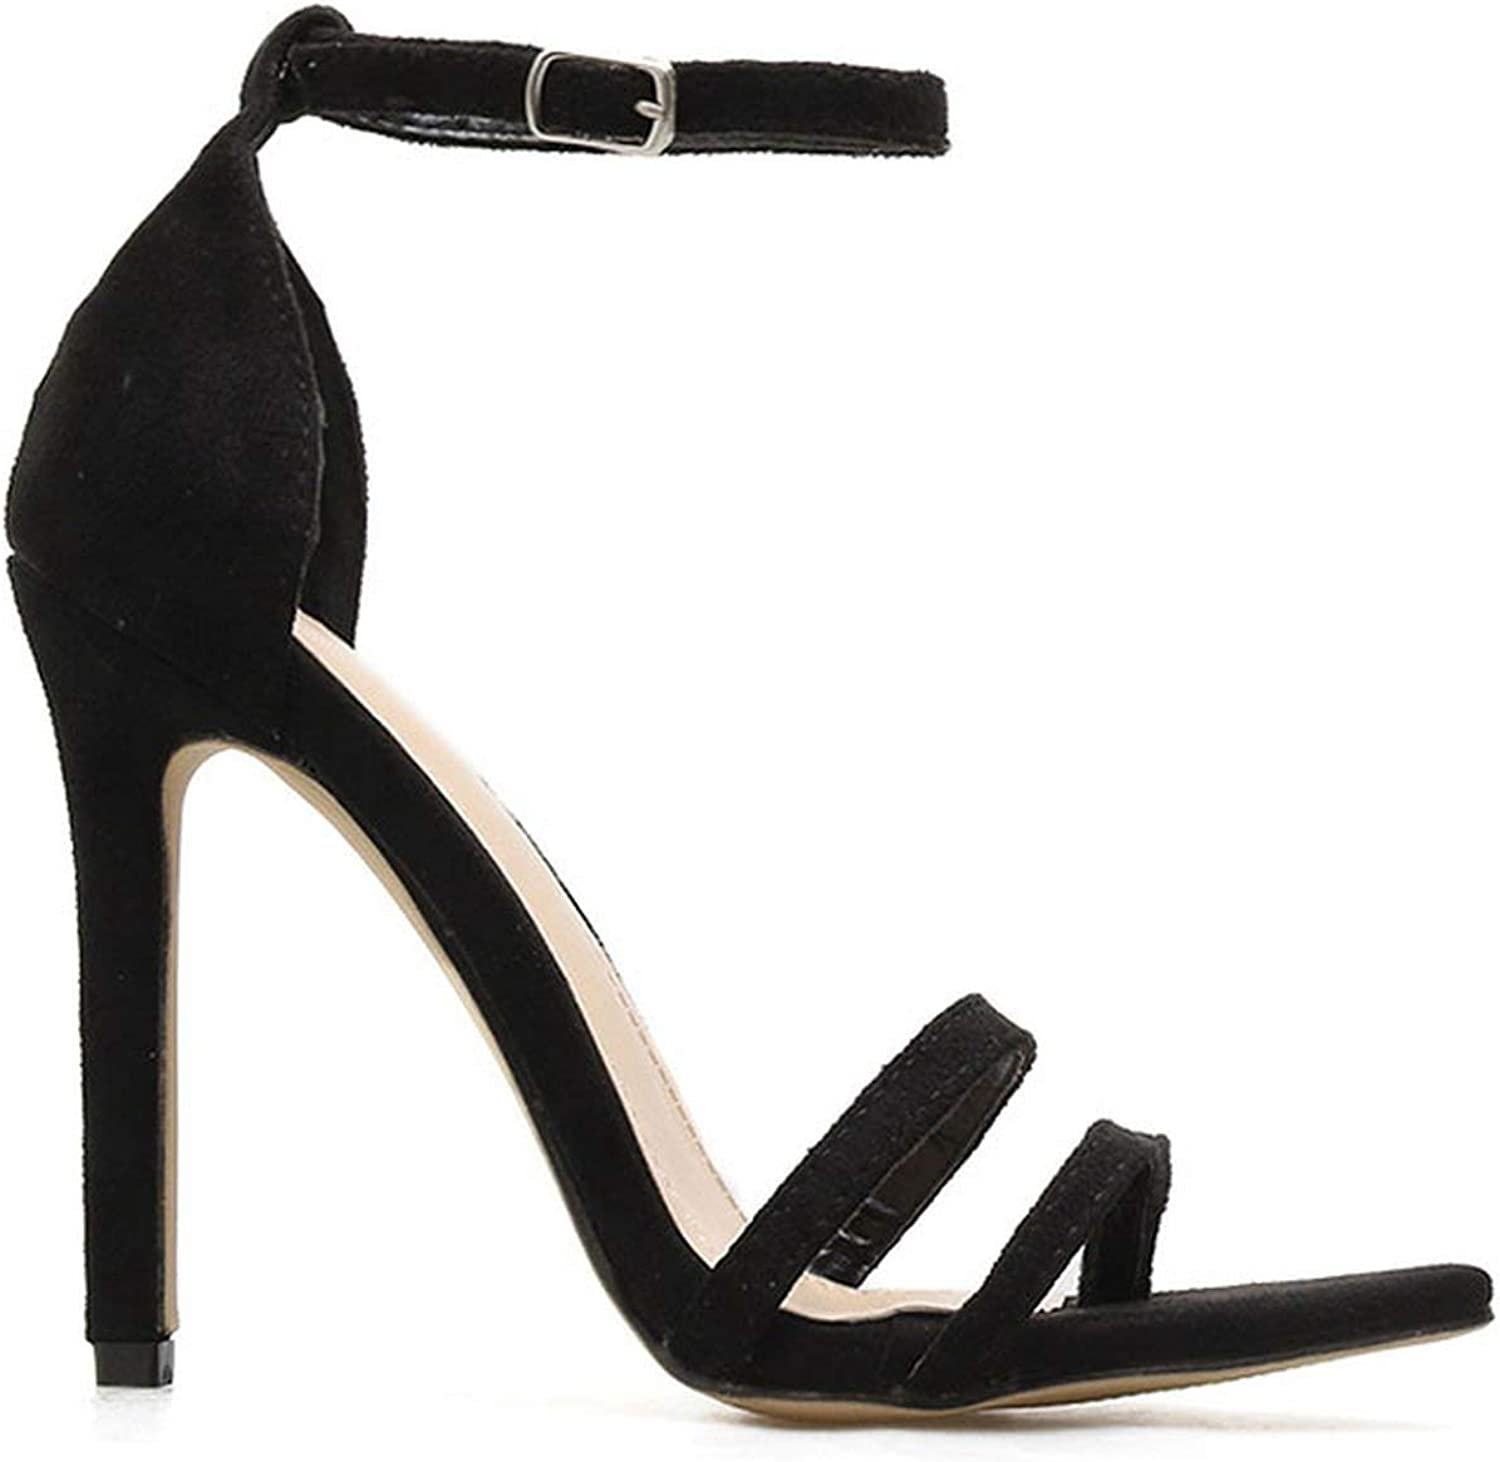 High Heels Sandals Women Gladiator High Heels Summer Sexy Buckle Pointed Toe Party Slip-On shoes 11Cm